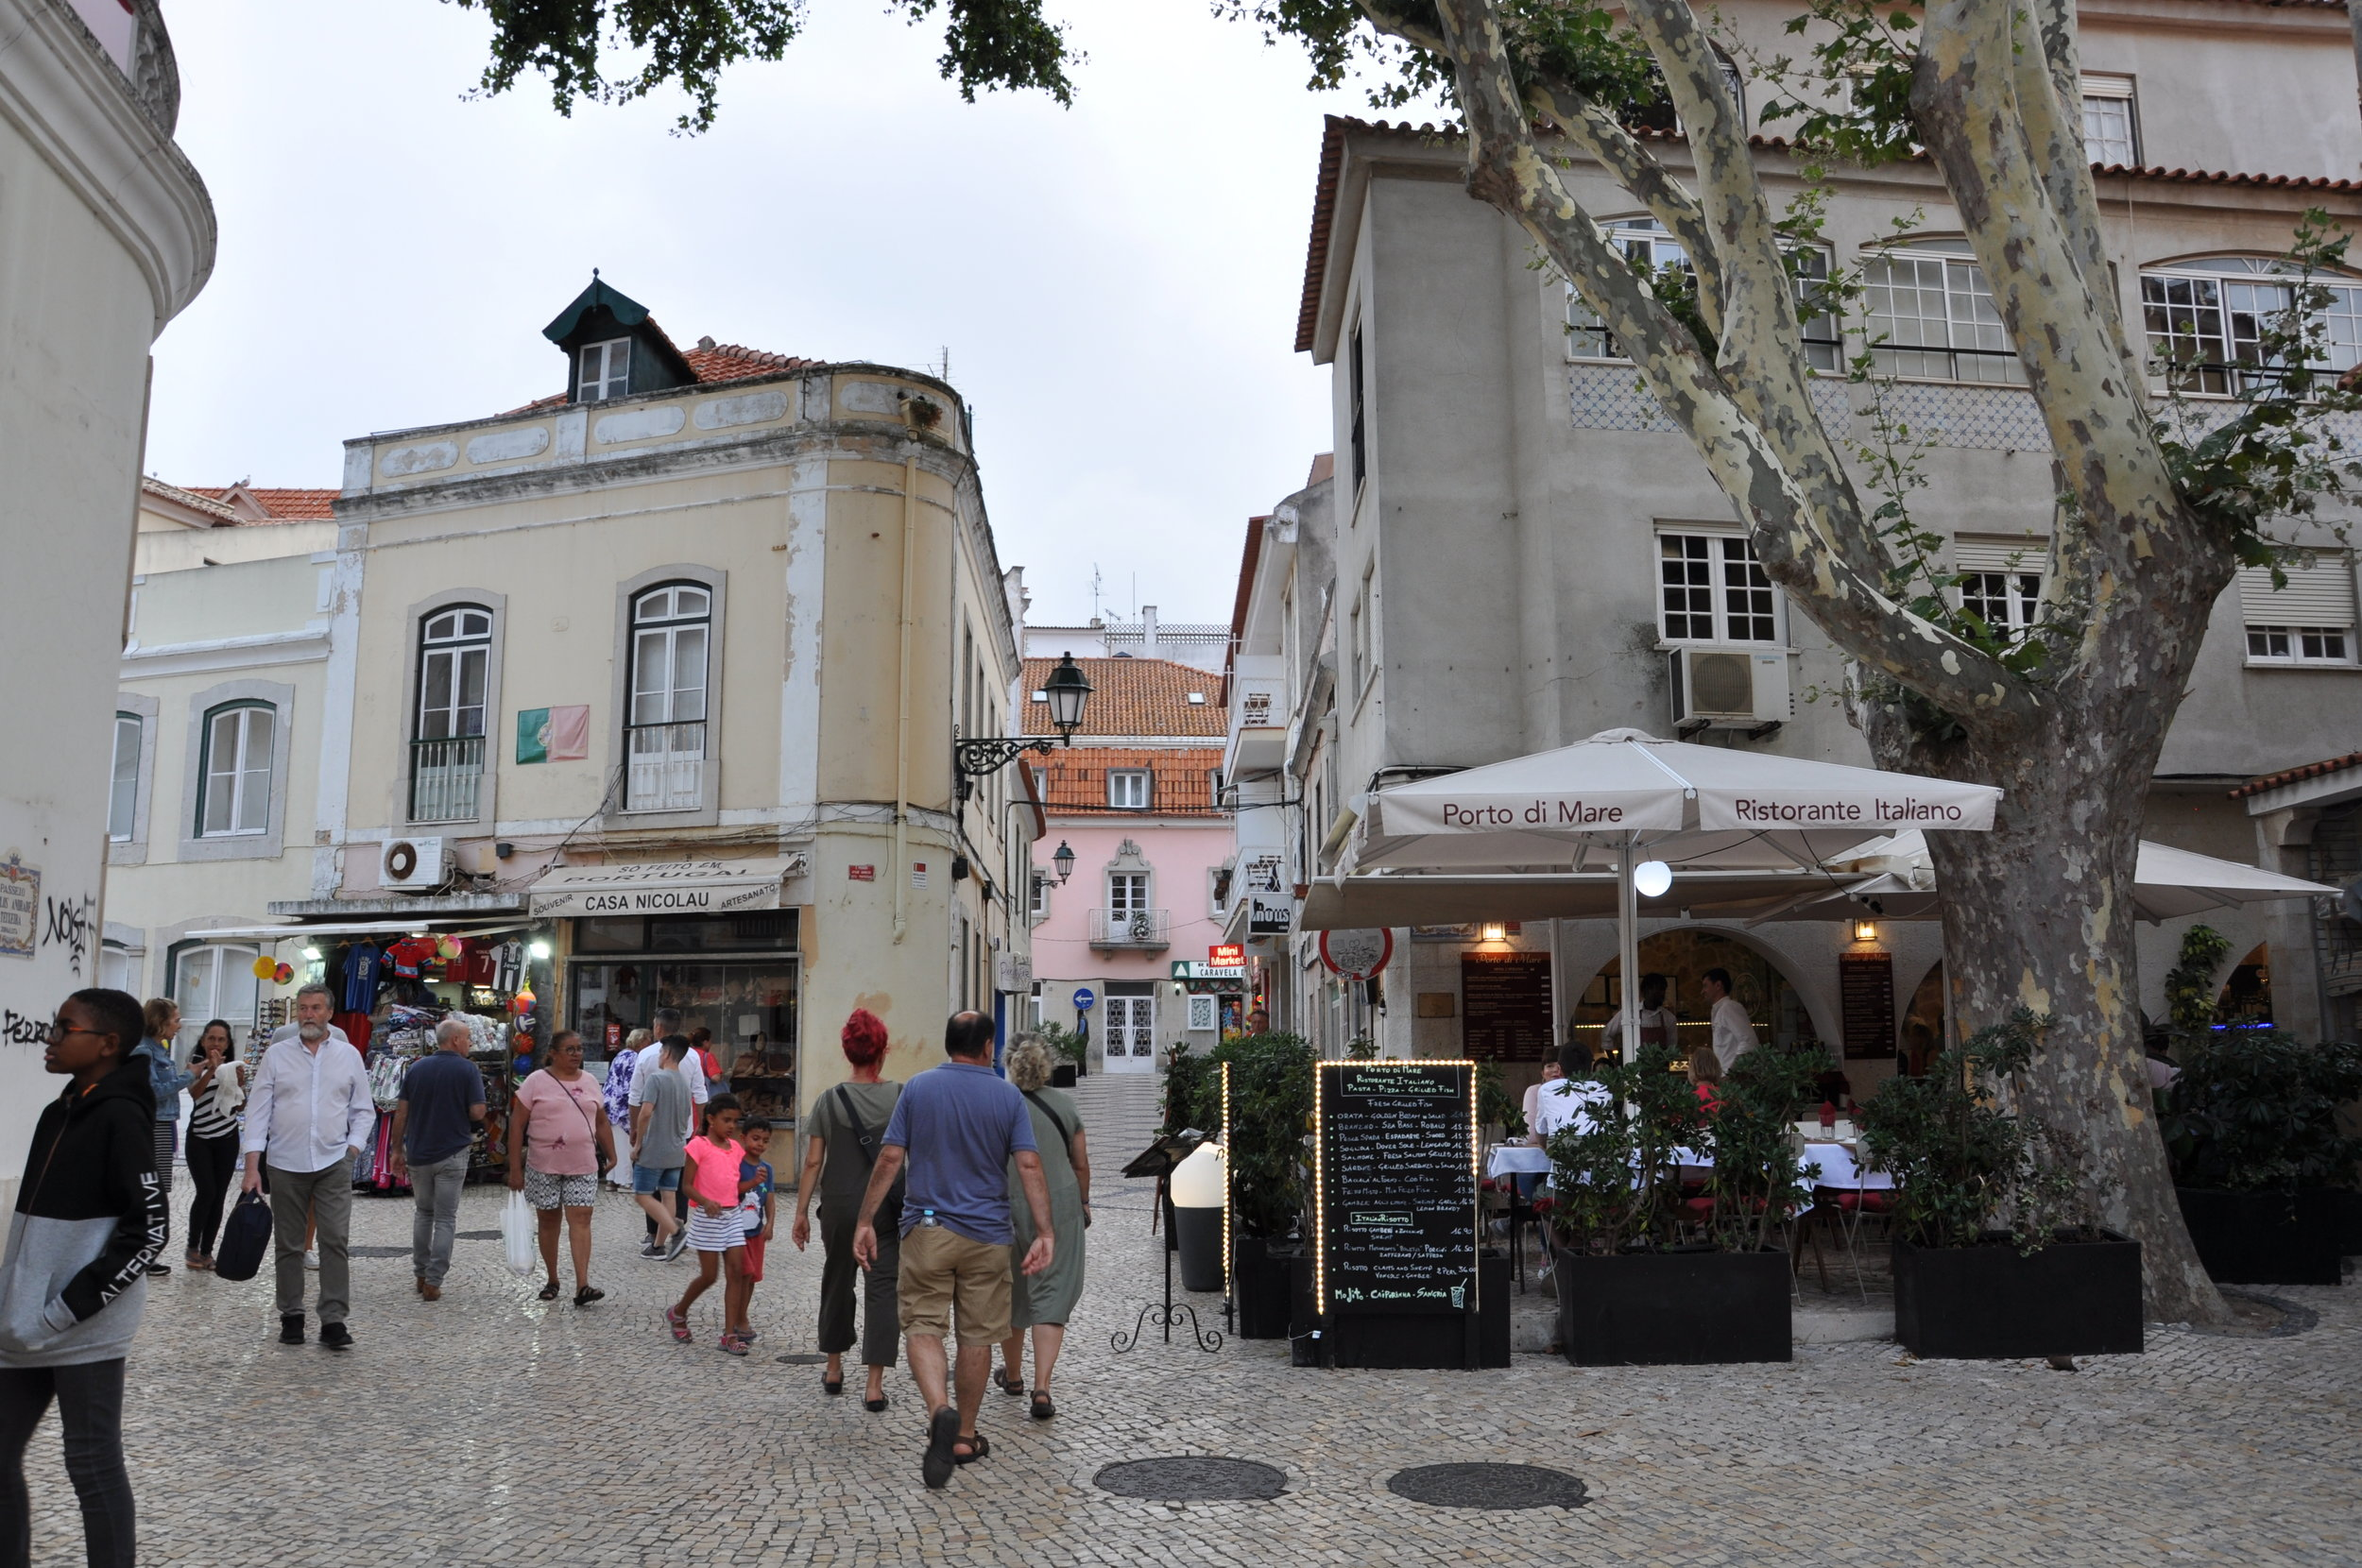 Cafes and tourists in the old town.